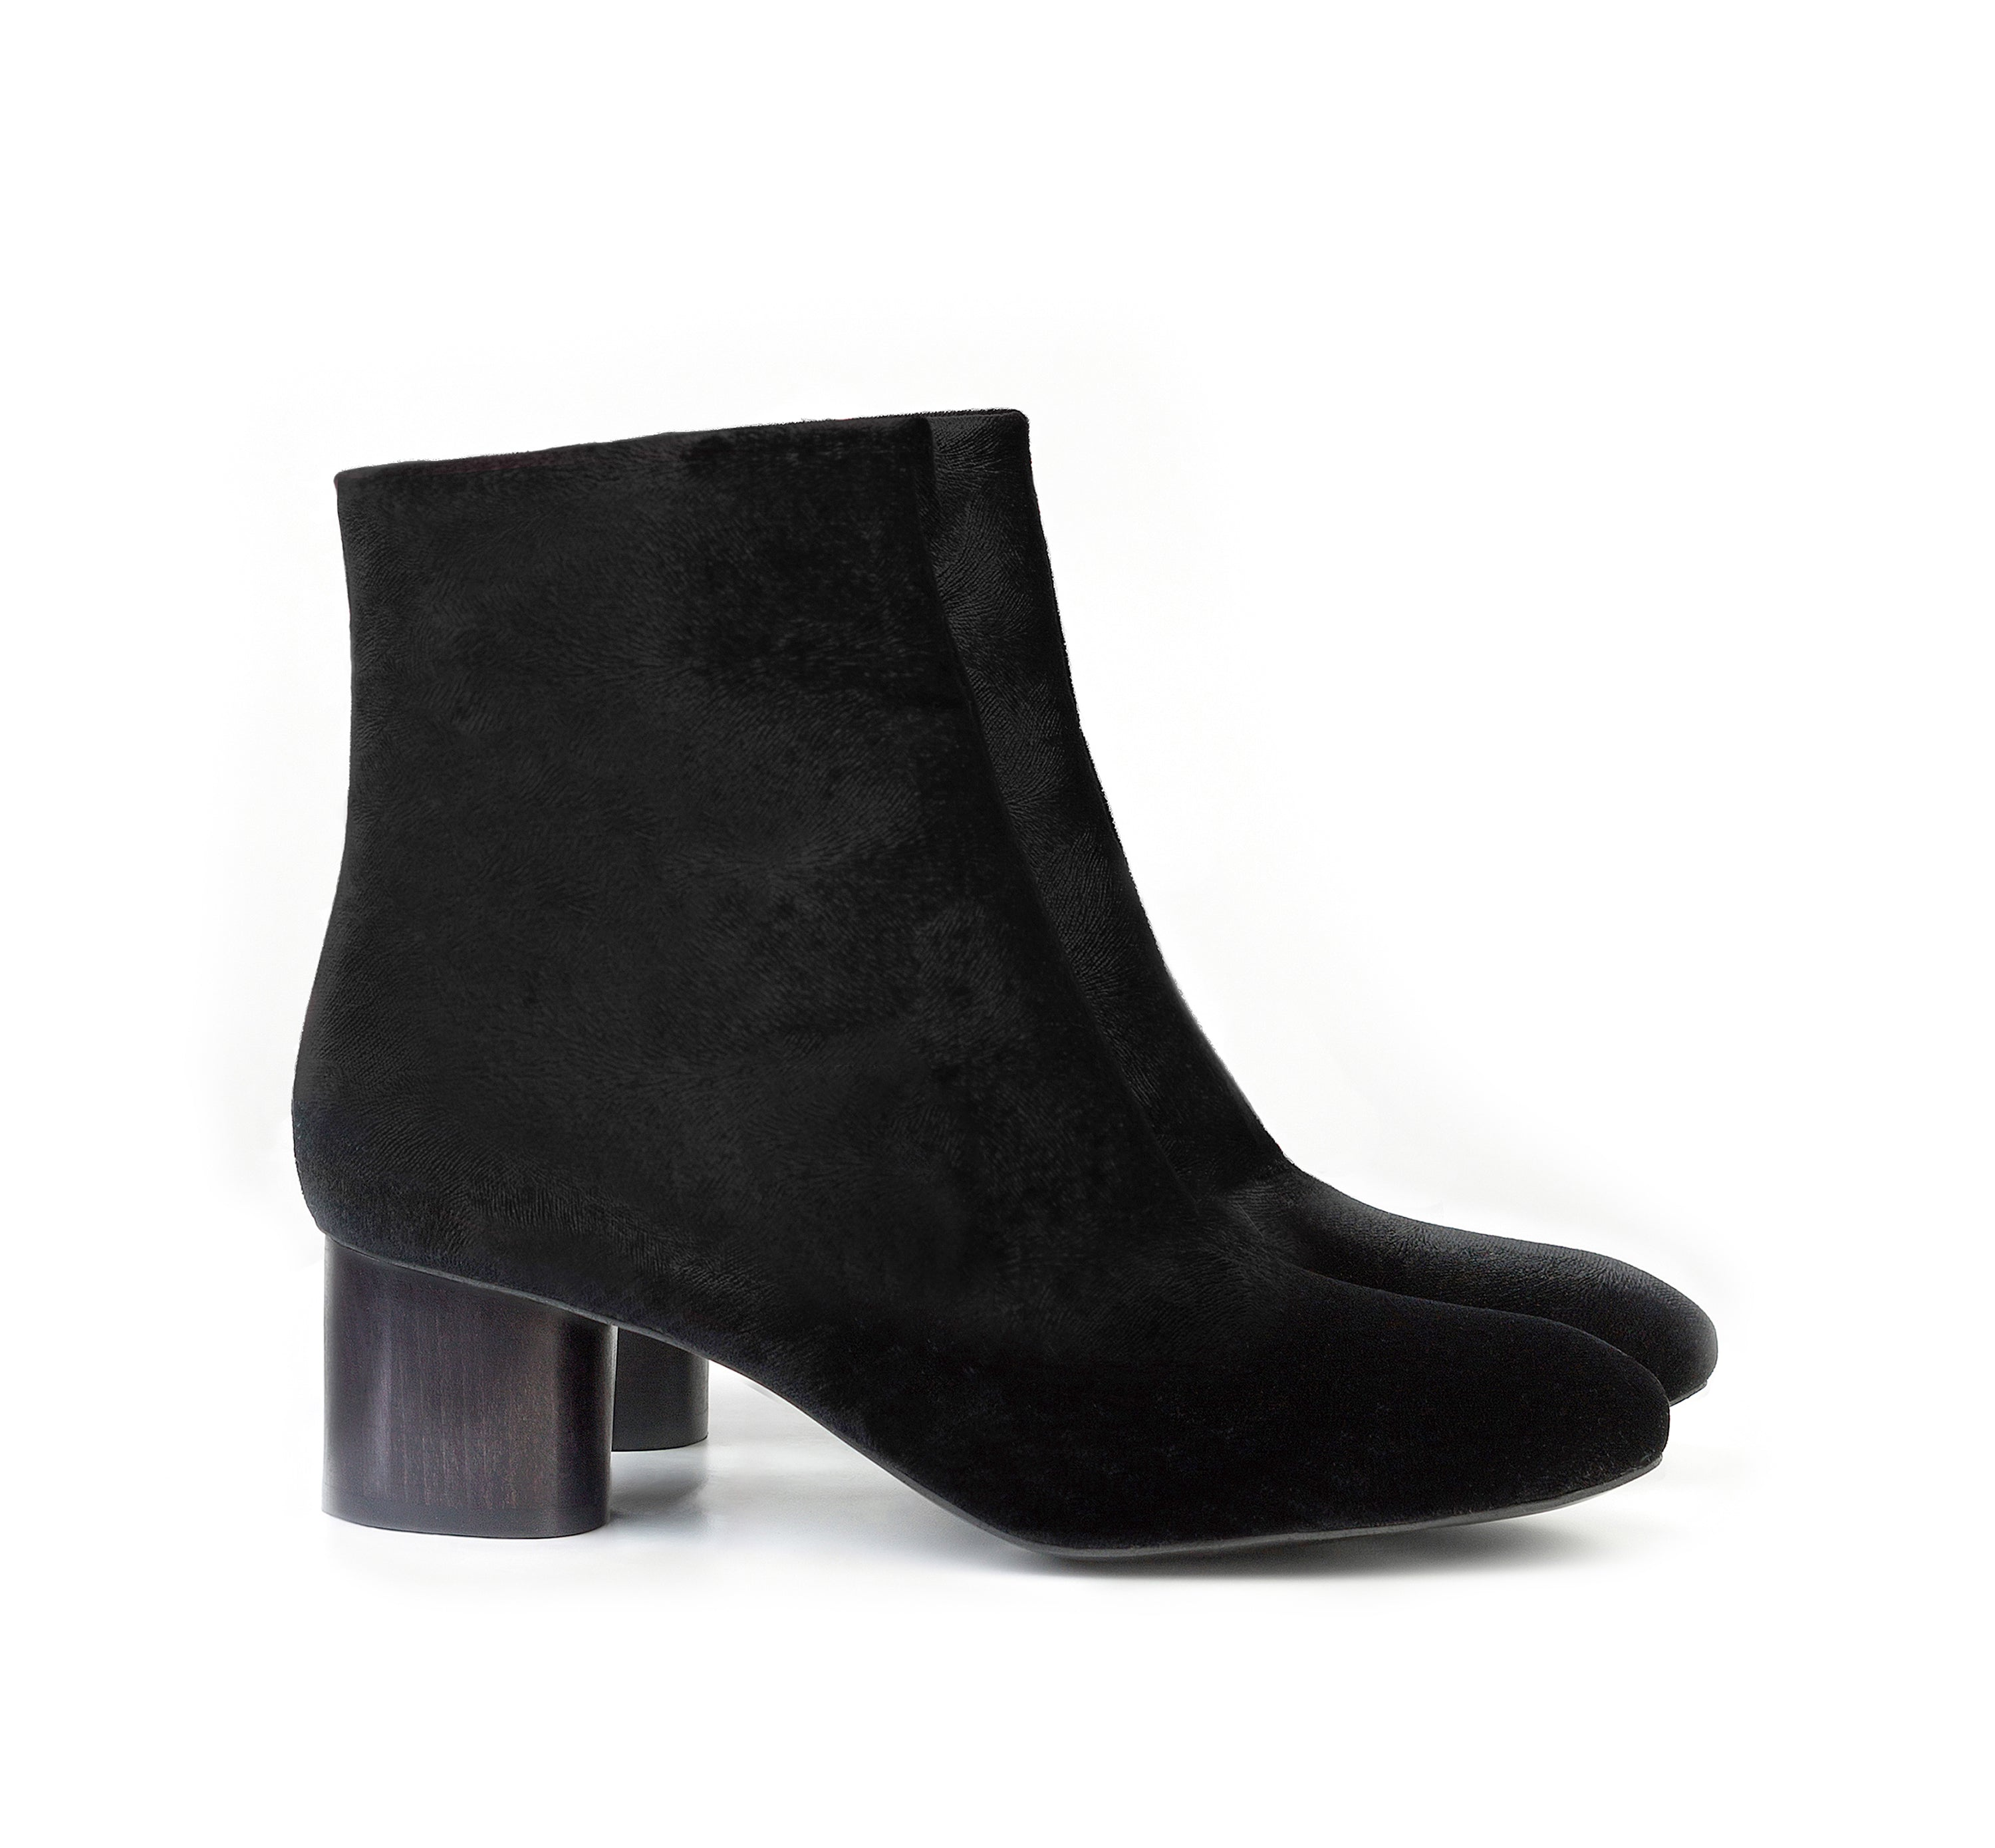 Low Ankle Boot in Black Velvet. Vegan Luxe Ethical Footwear by Sydney Brown. Black Sustainable Wood Heels. Sustainable & Ethical. Cruelty-Free. Autumn Winterstyle.